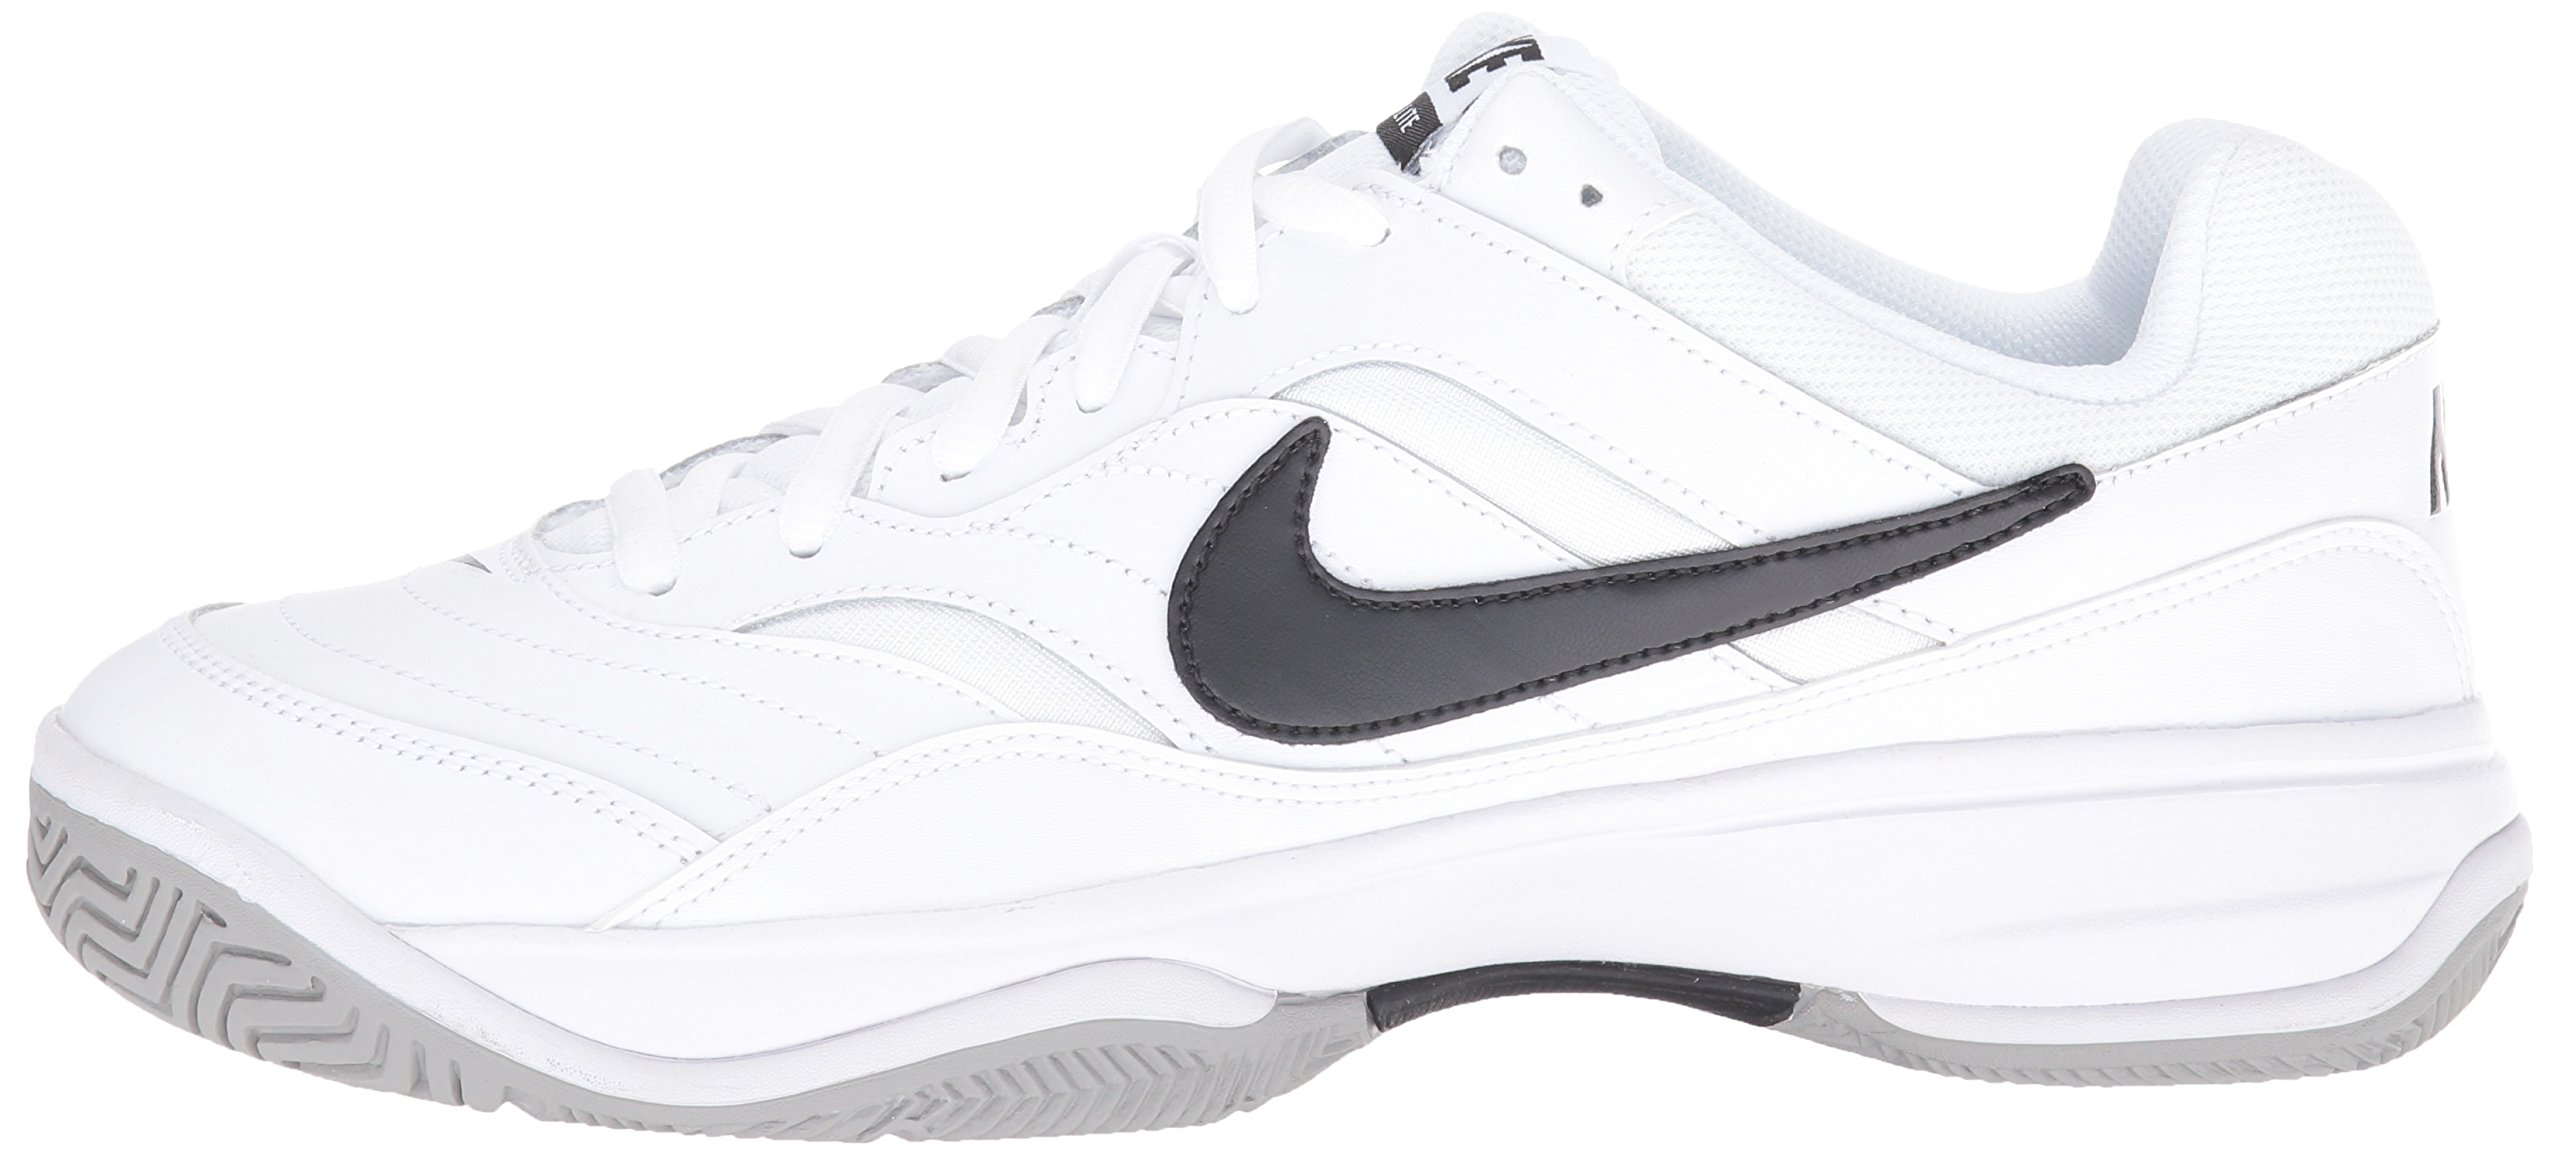 NIKE Men's Court Lite Tennis Shoe, White/Medium Grey/Black, 6.5 D(M) US by Nike (Image #5)